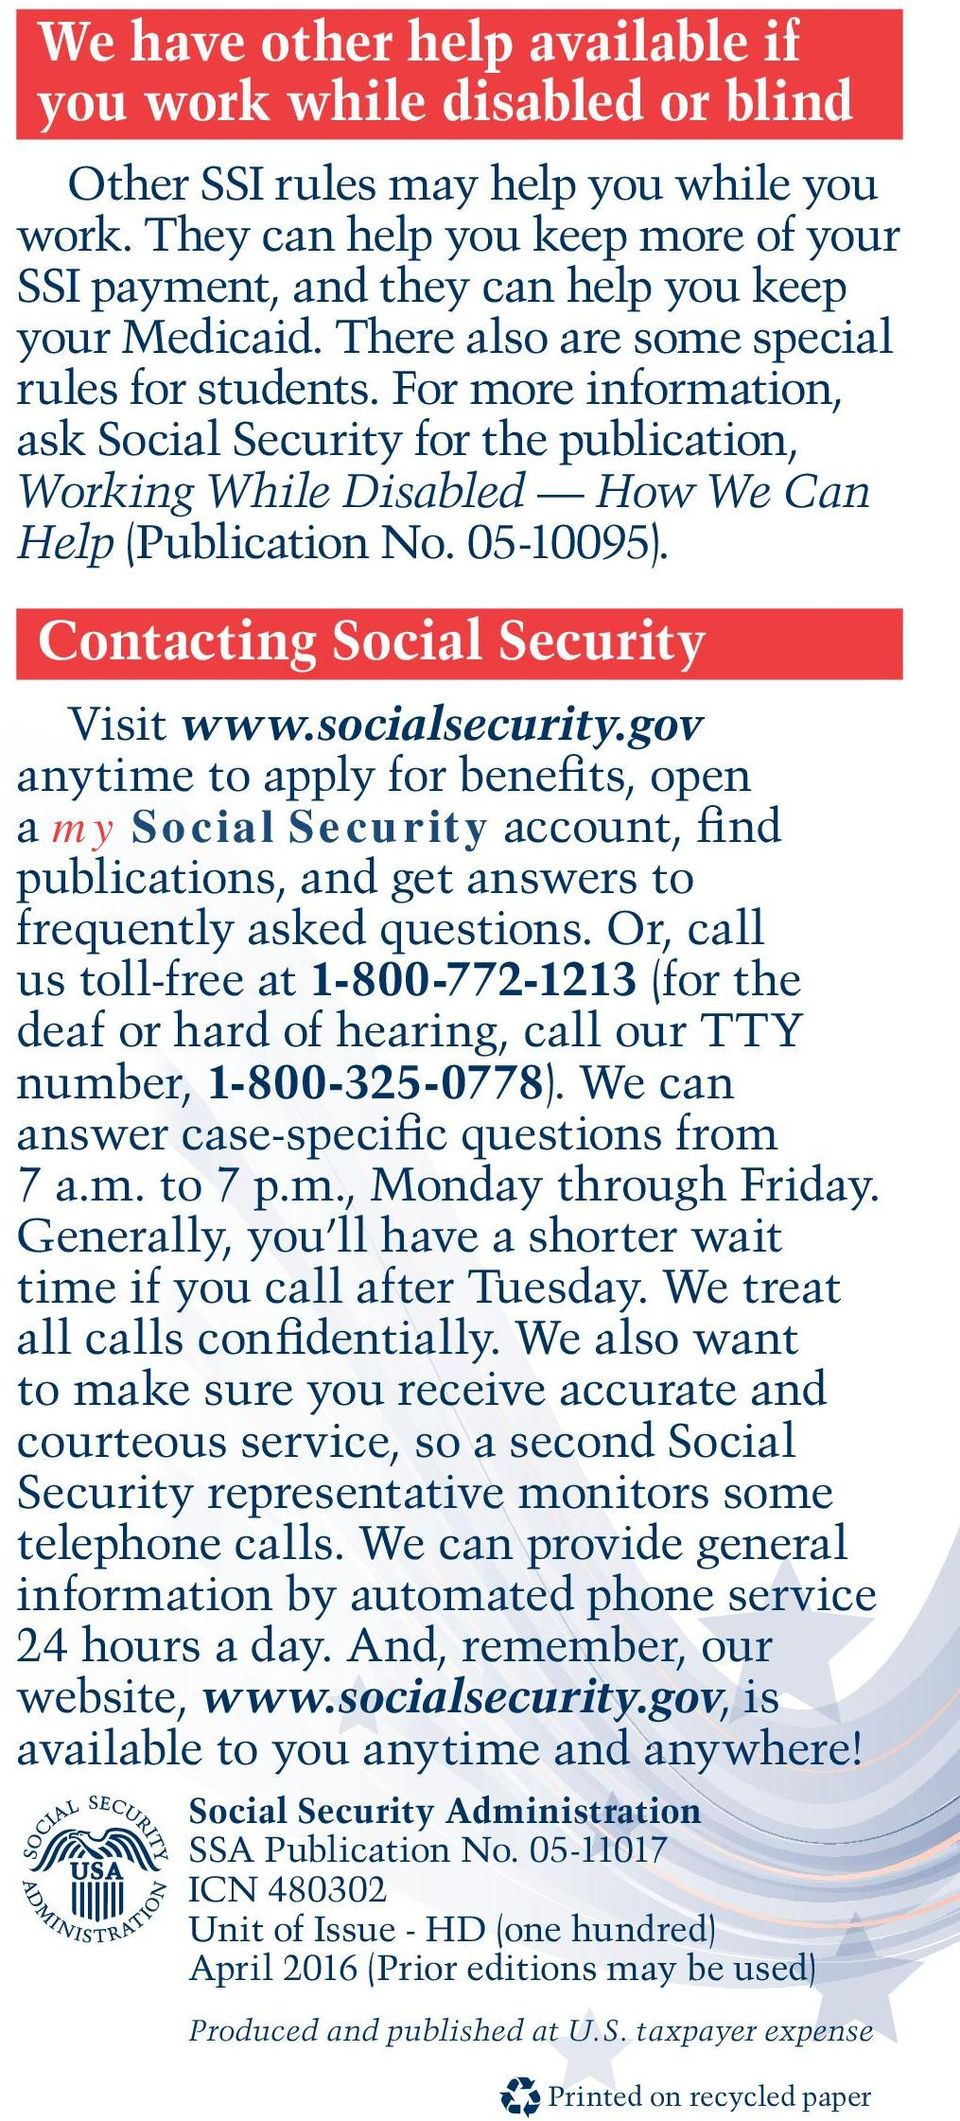 Contacting Social Security Visit www.socialsecurity.gov anytime to apply for benefits, open a my Social Security account, find publications, and get answers to frequently asked questions.